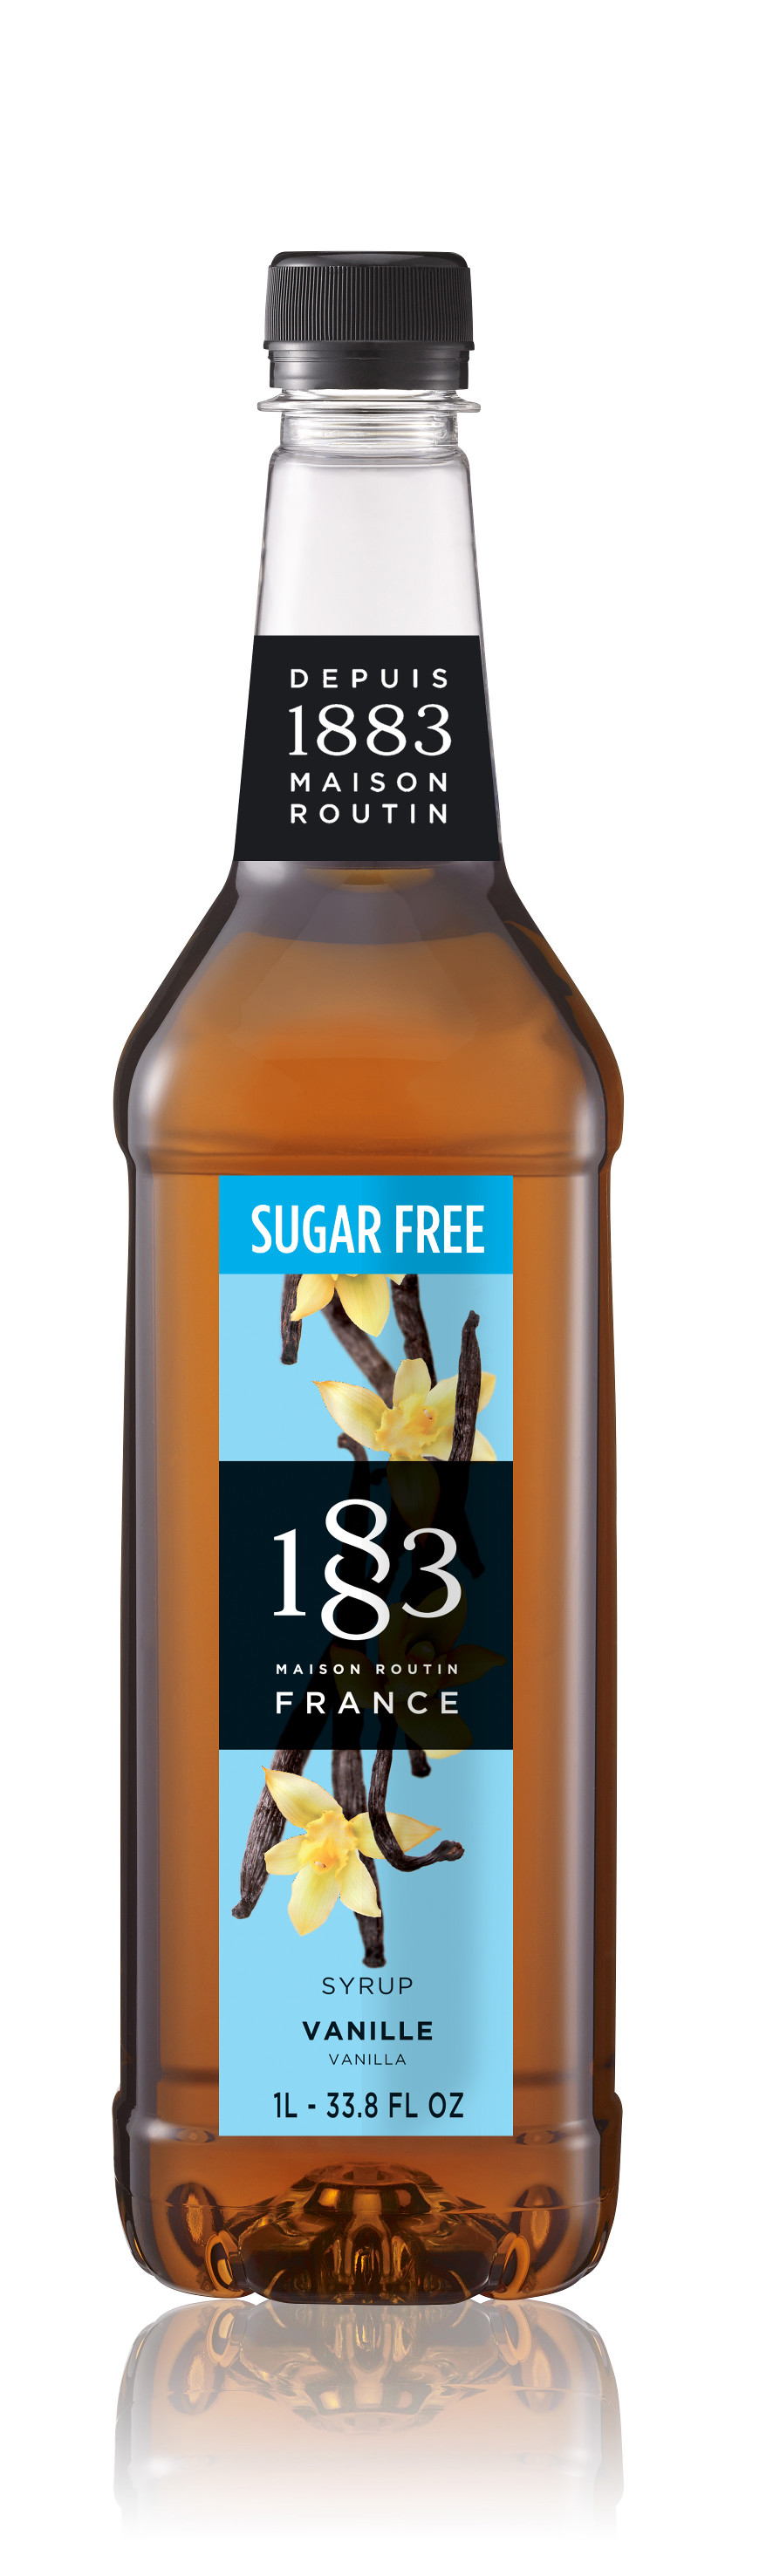 1883 Sugar Free Syrup Vanilla 1L PET Plastic Bottle